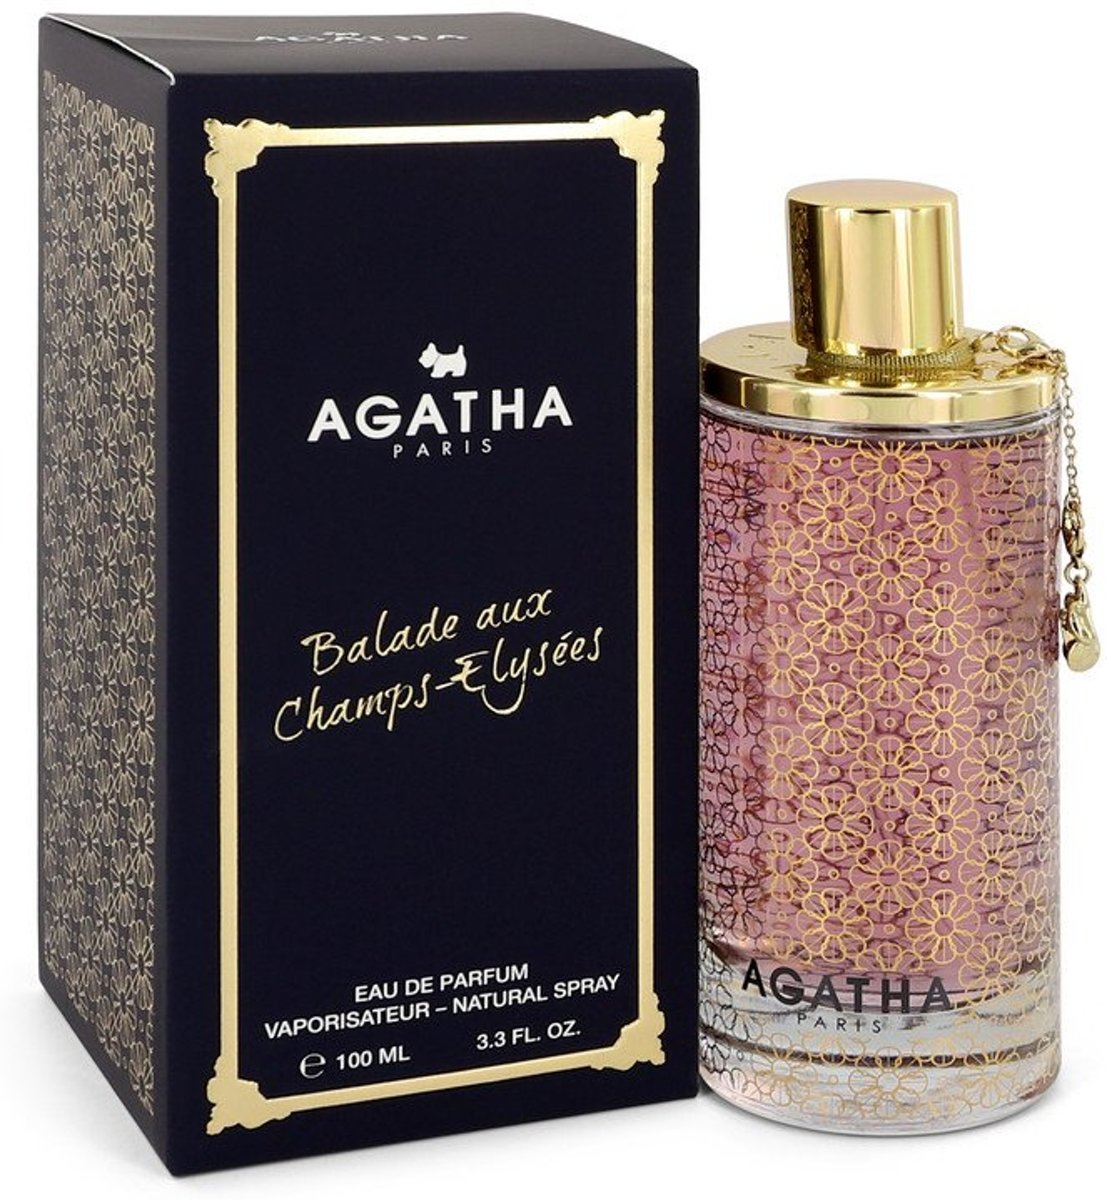 Agatha Paris Balade Aux Champs Elysees eau de parfum spray 100 ml